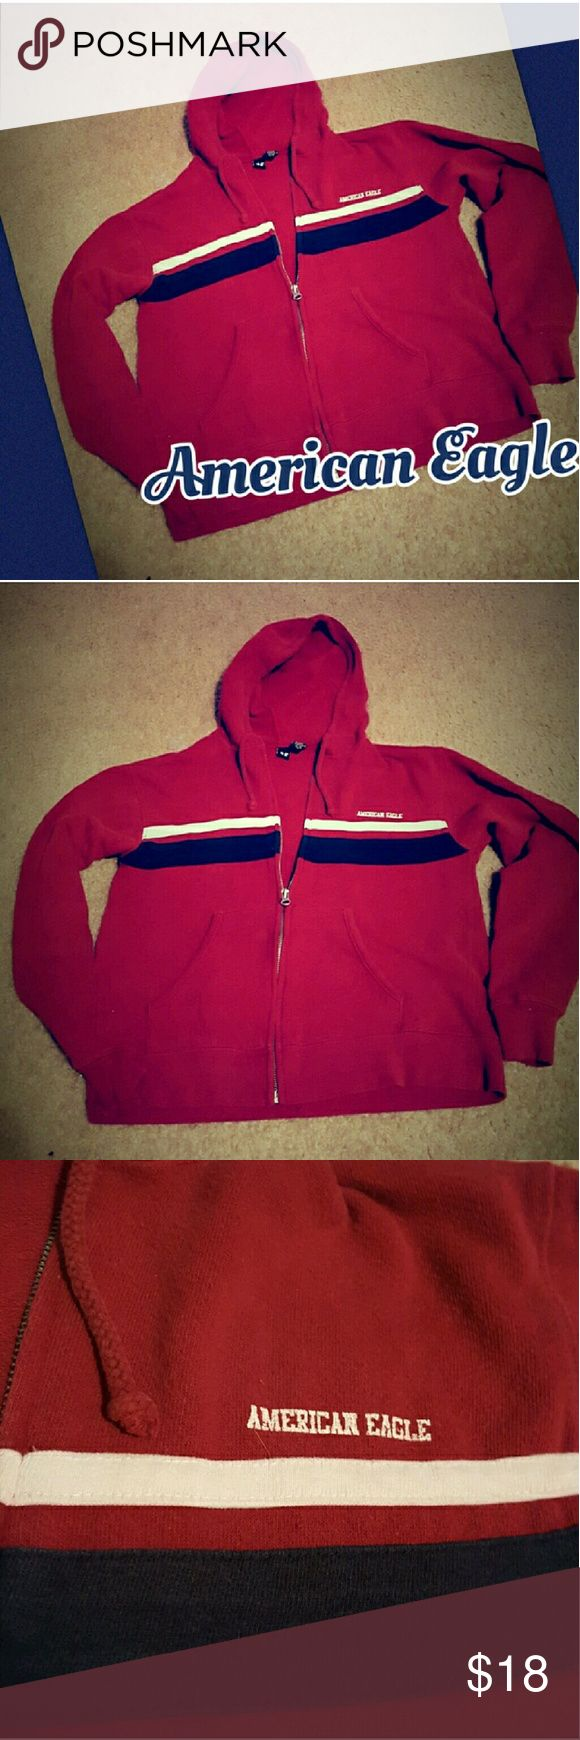 American Eagle Jacket Hoodie xs-med Red Blue American Eagle Jacket Hoodie. Tag says xs, but fits more like small-medium. Worn a few times, but still in good condition. Smoke free home. I will gladly bundle items to give you a discount! American Eagle Outfitters Tops Sweatshirts & Hoodies